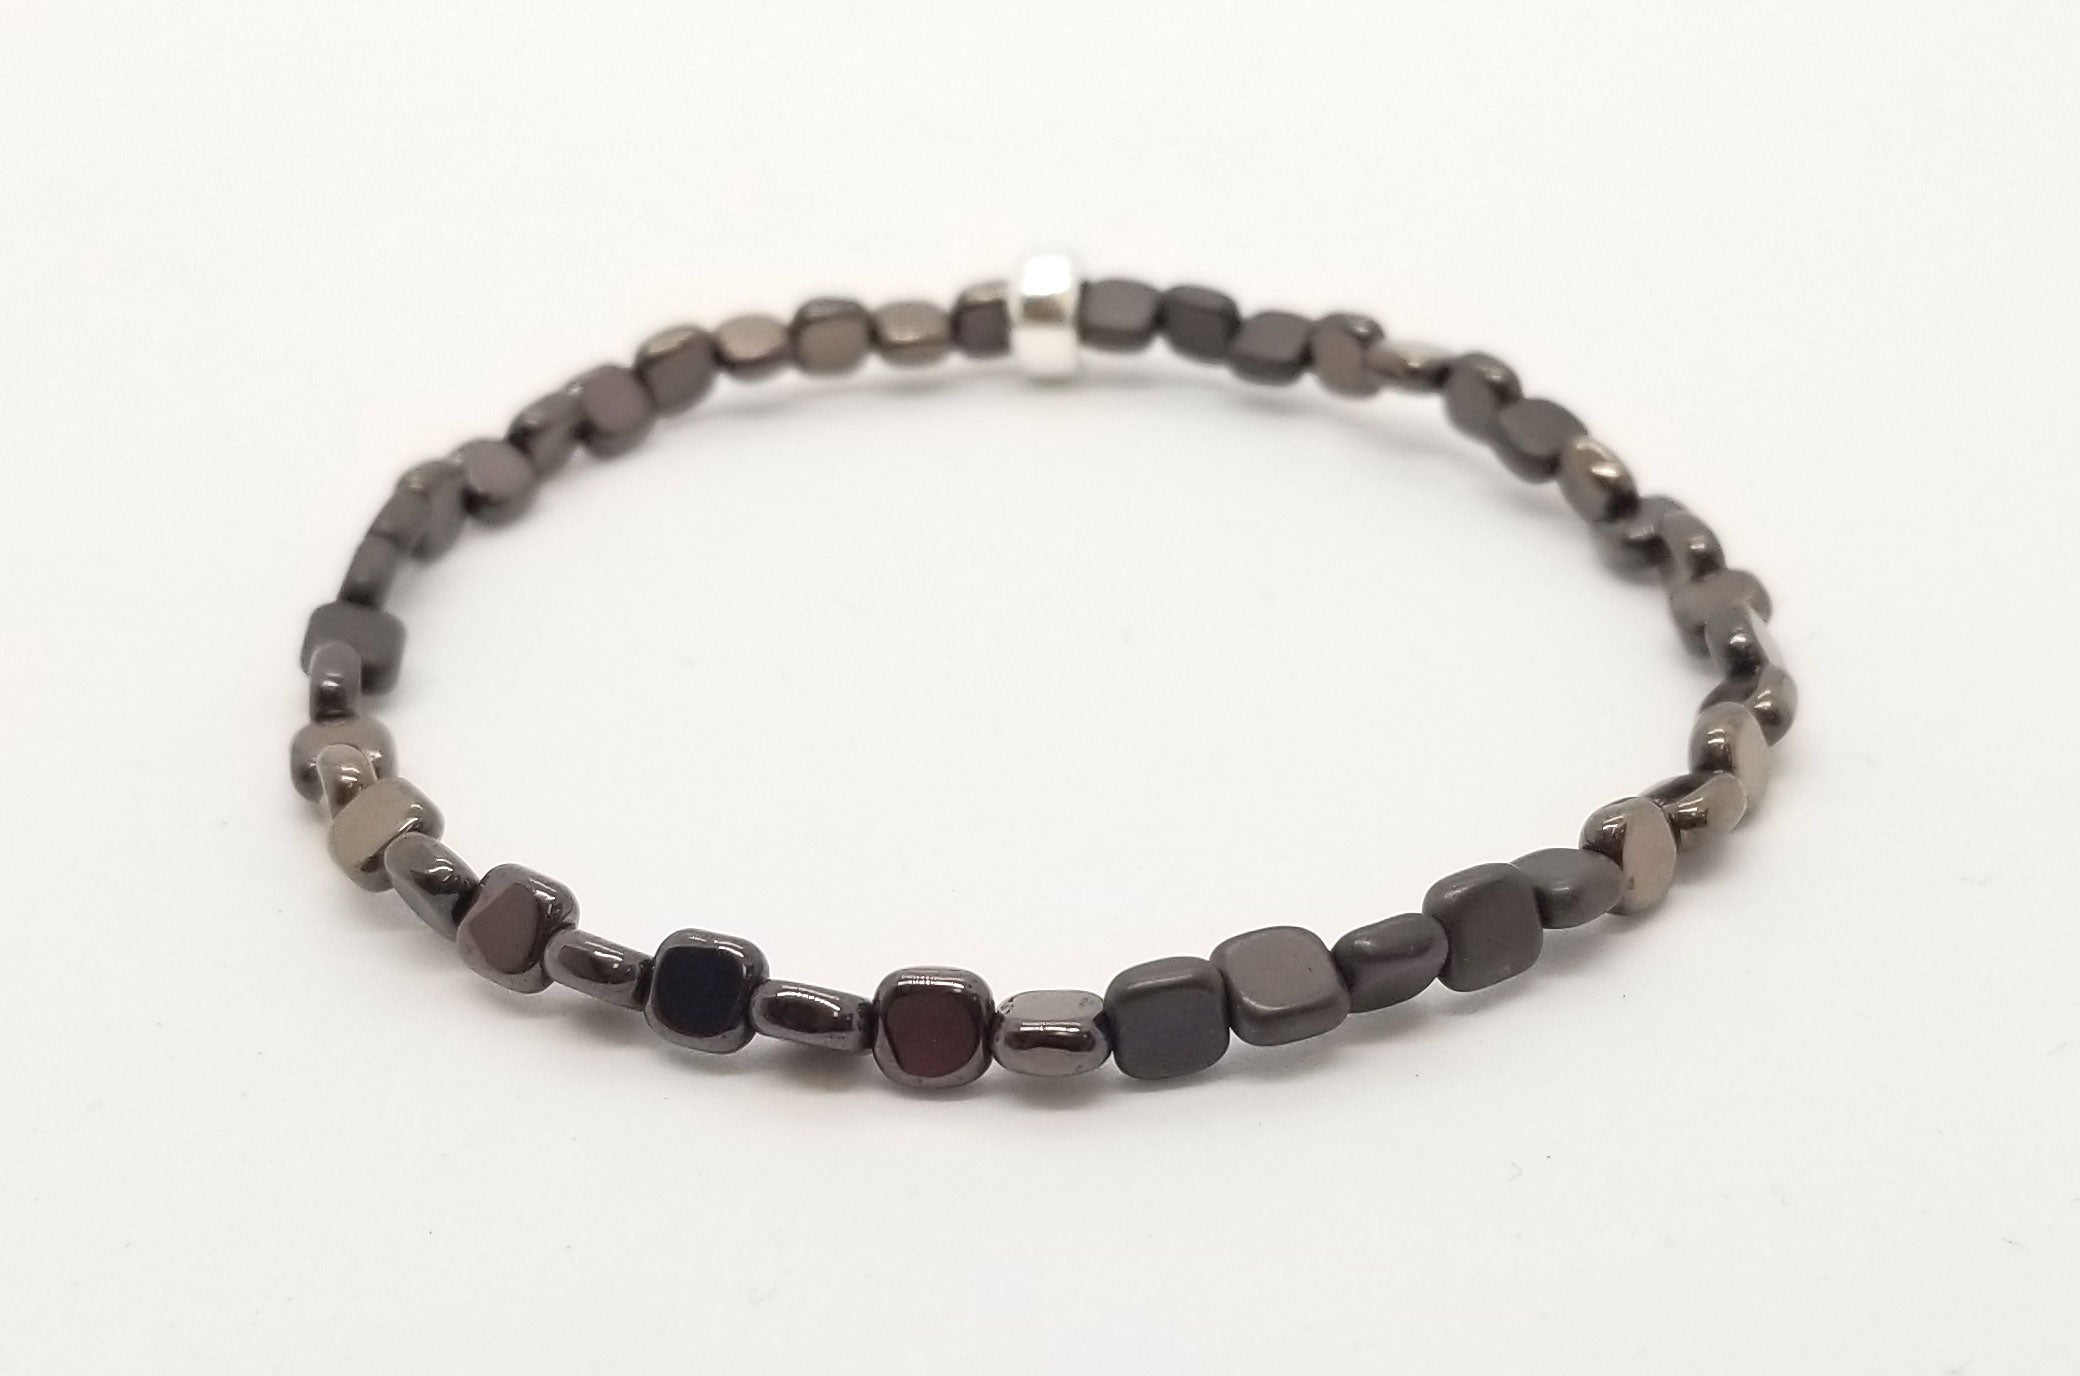 Metallic Brown Gloss/Matte Hematite Skinny Square with Silver Bracelet